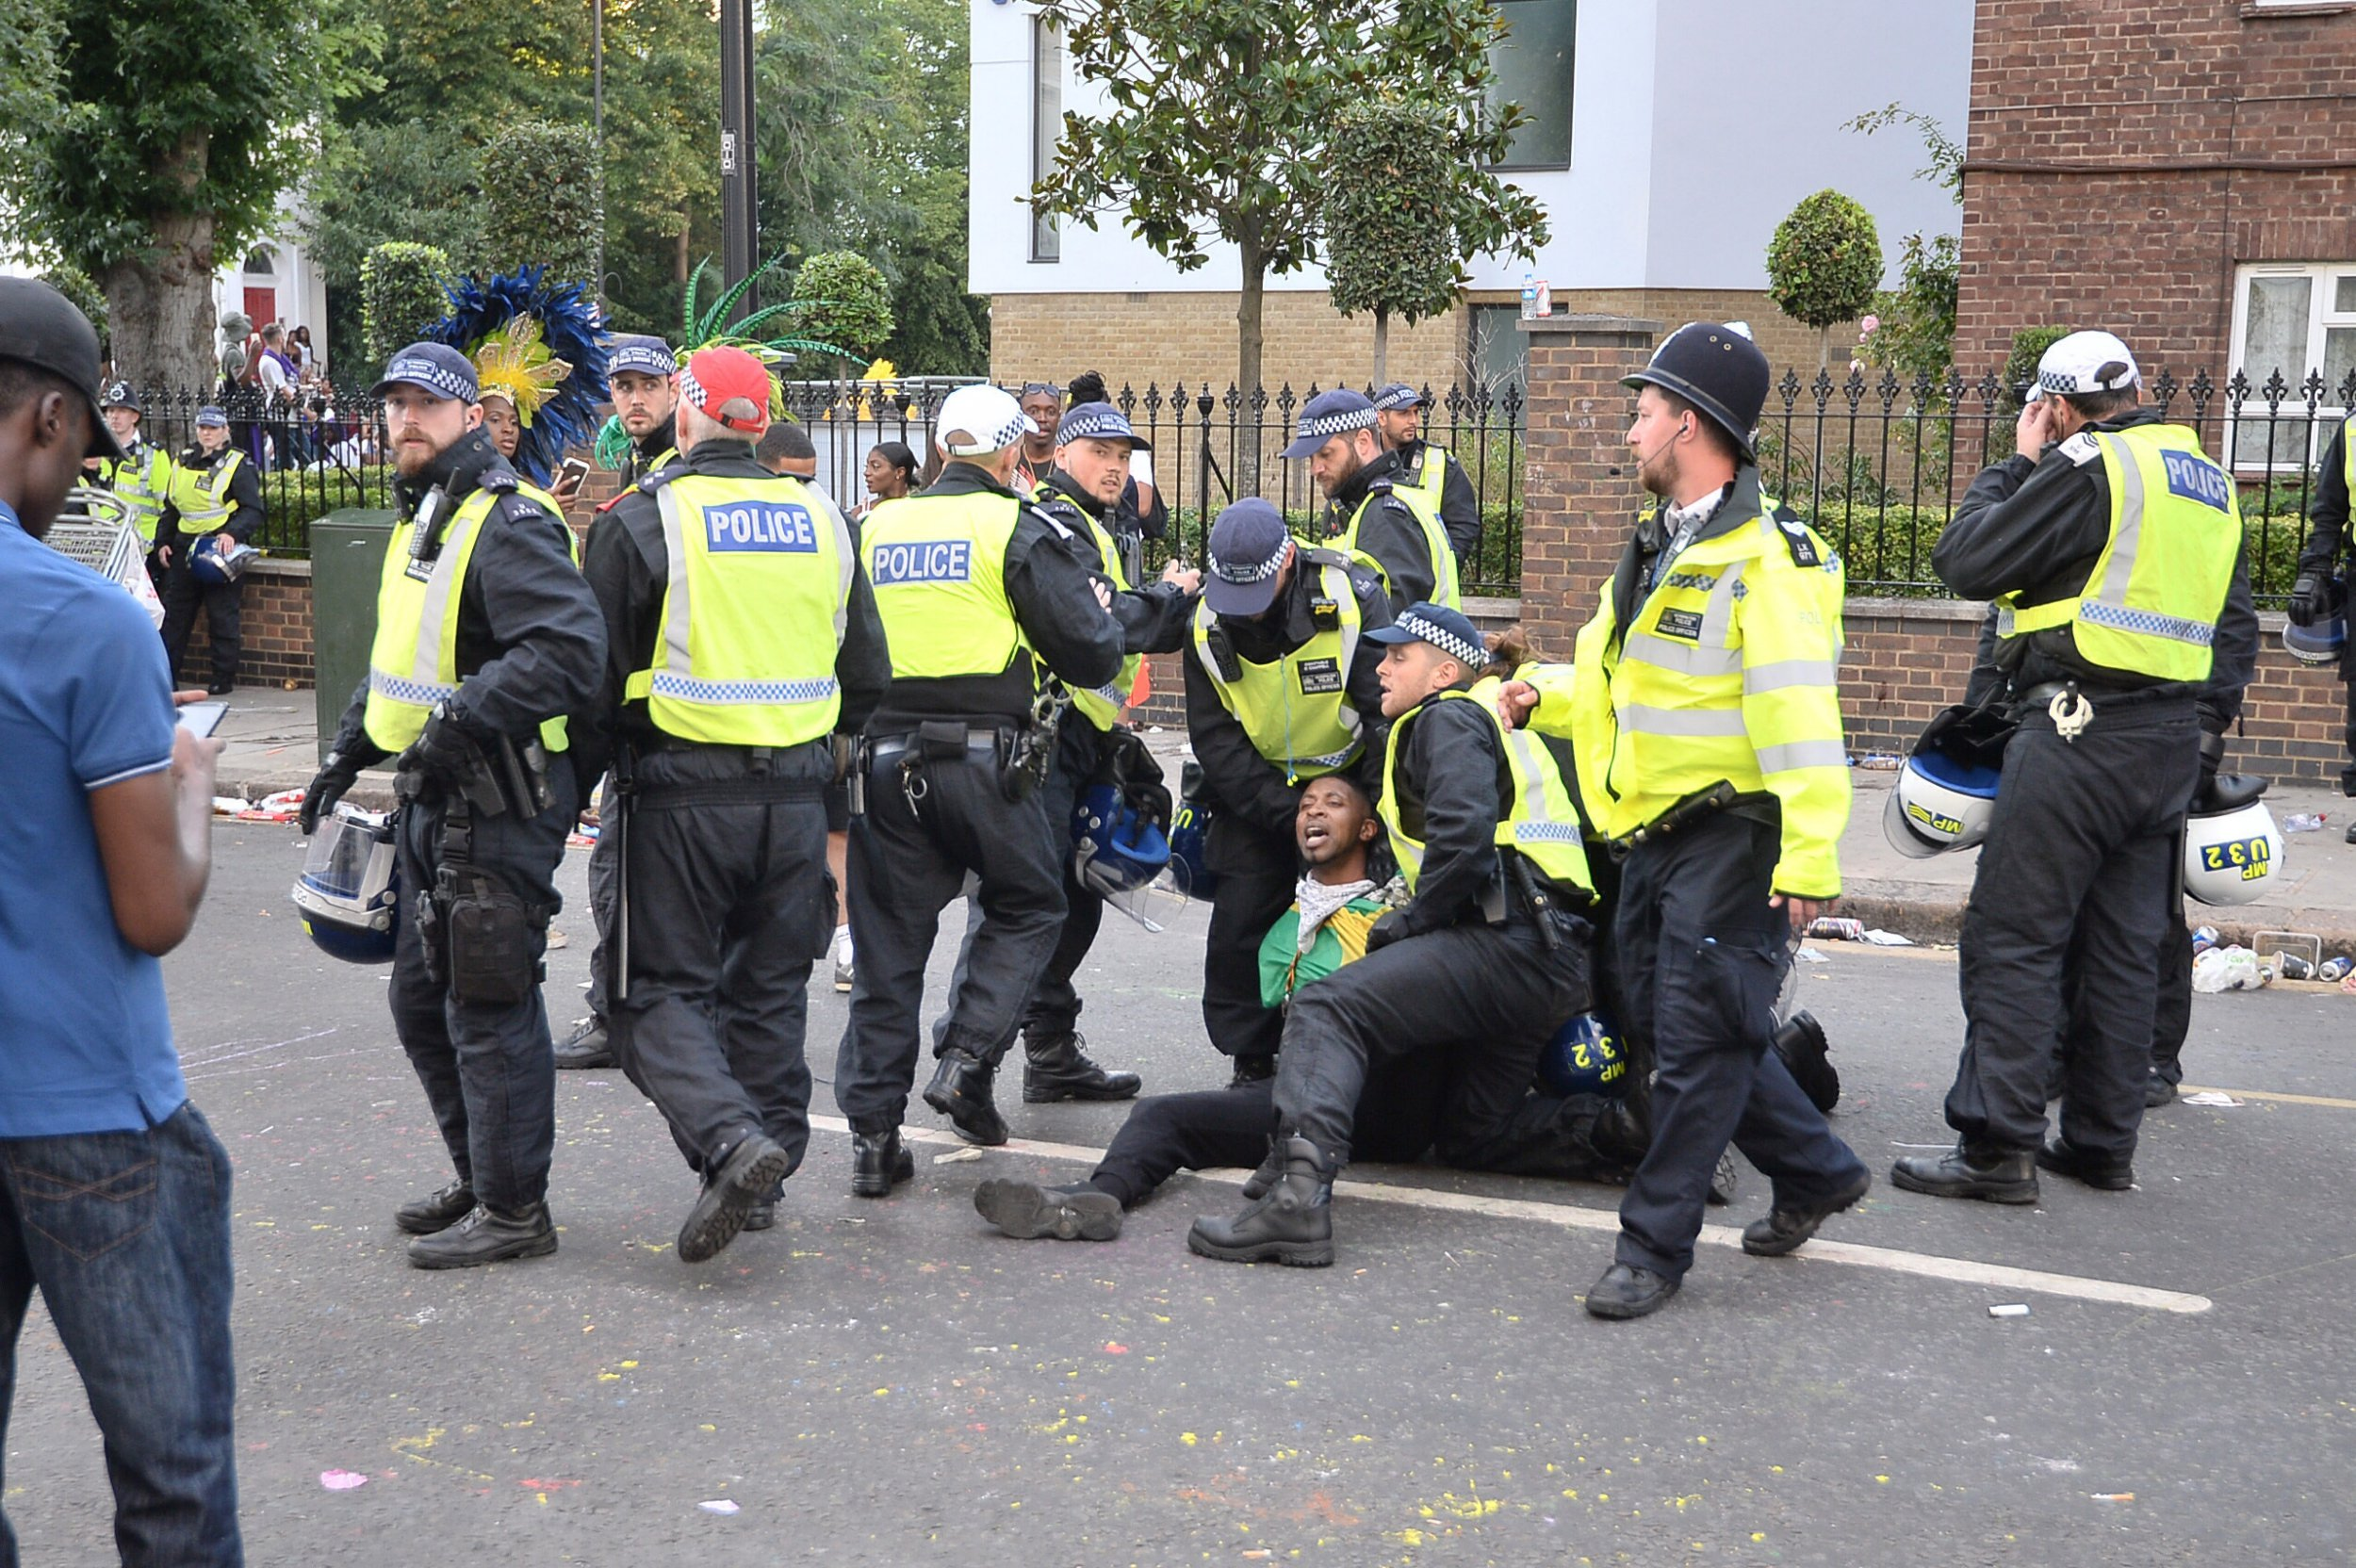 Police reveal final number of arrests during Notting Hill Carnival